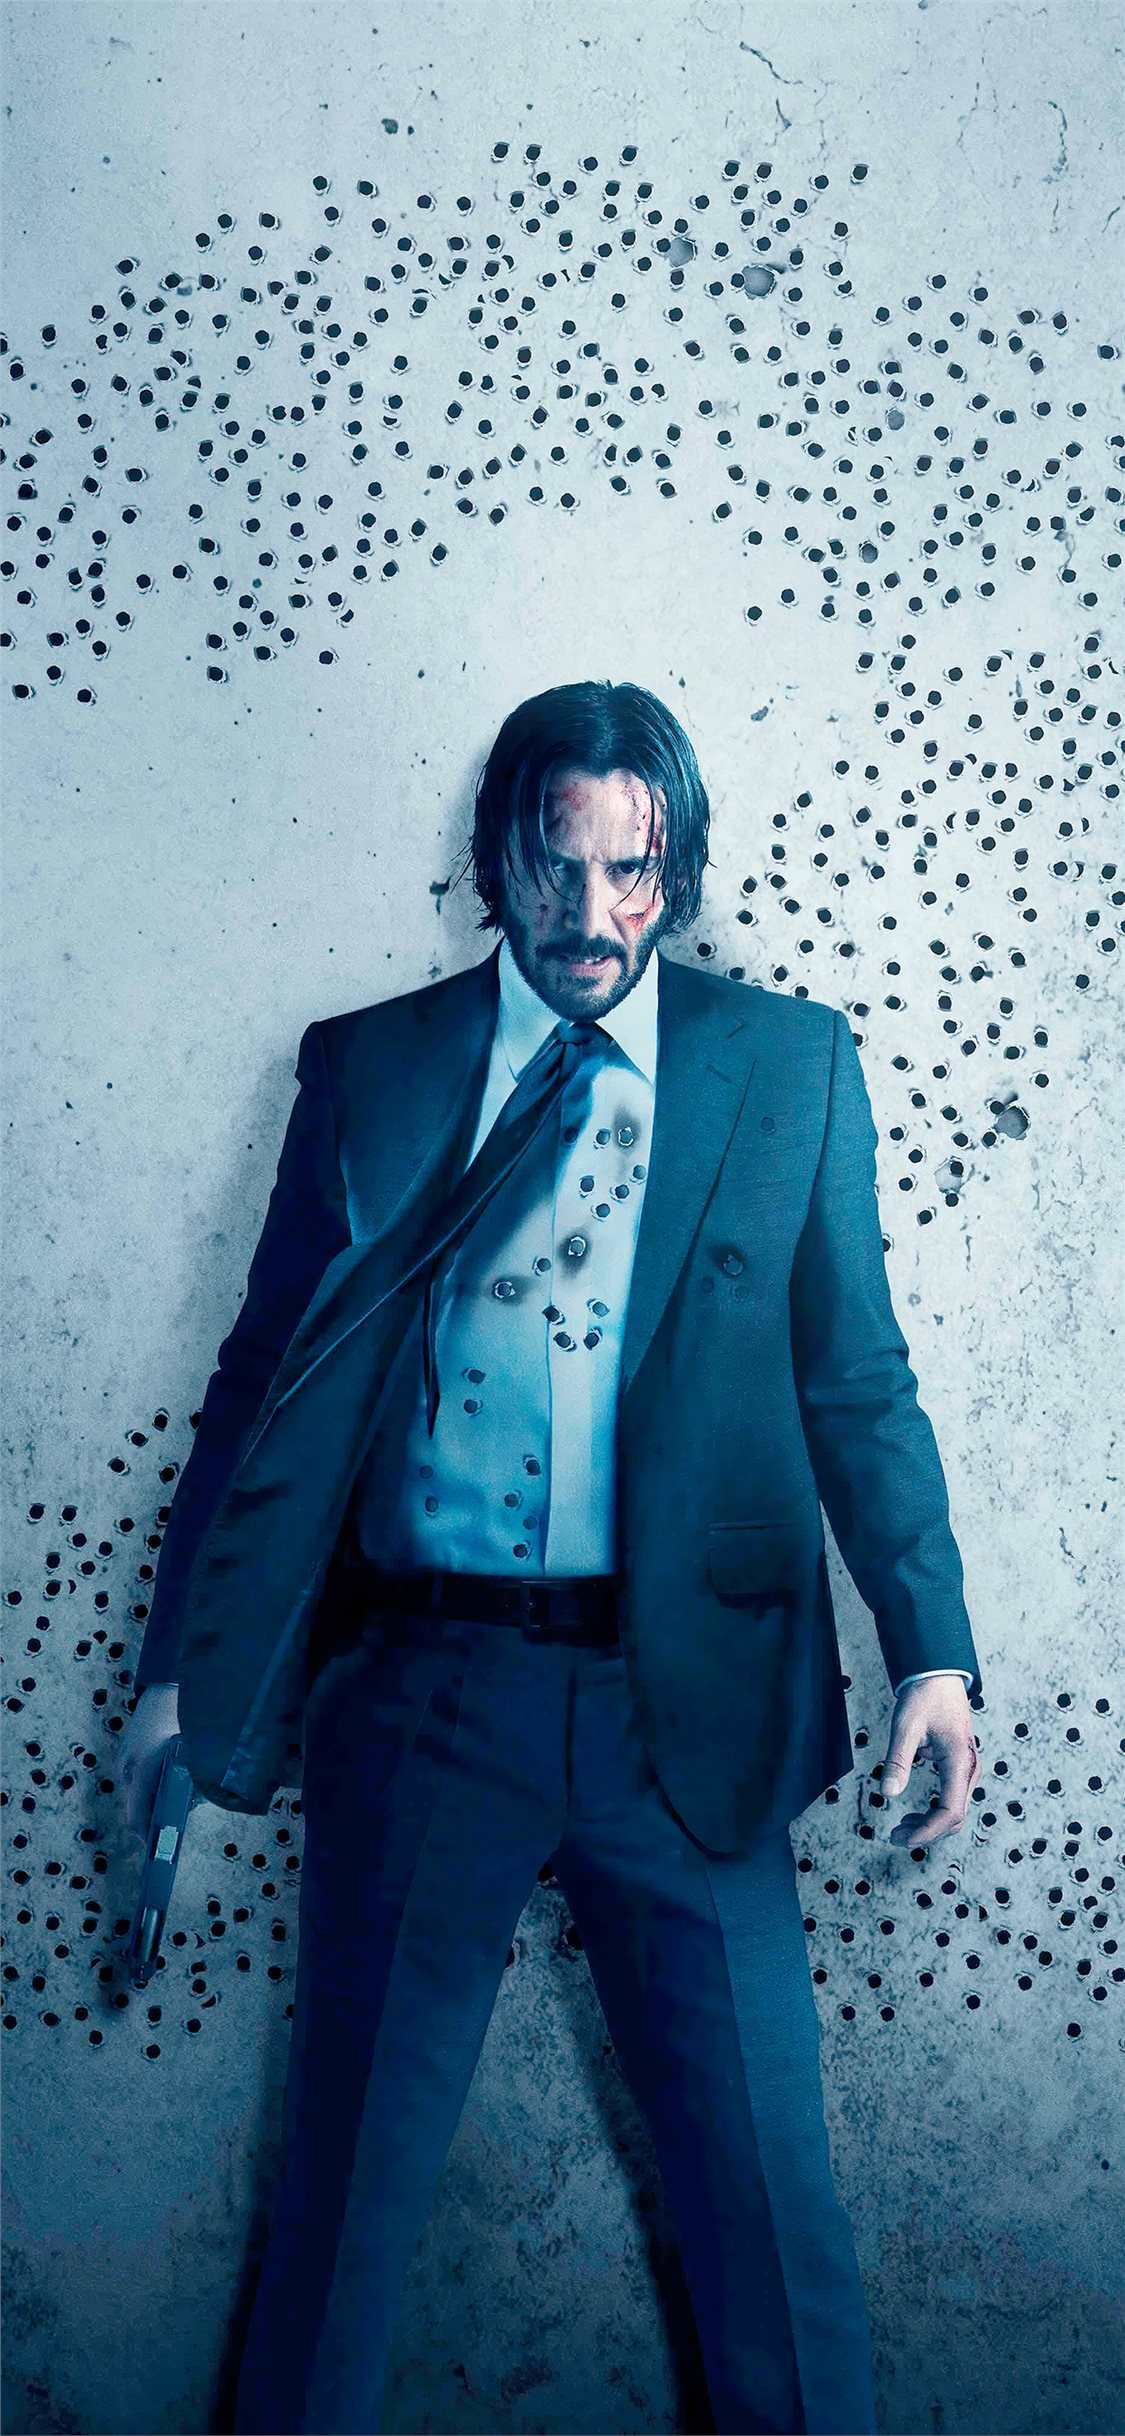 John Wick Chapter 2 4k Iphone X Wallpapers Free Download